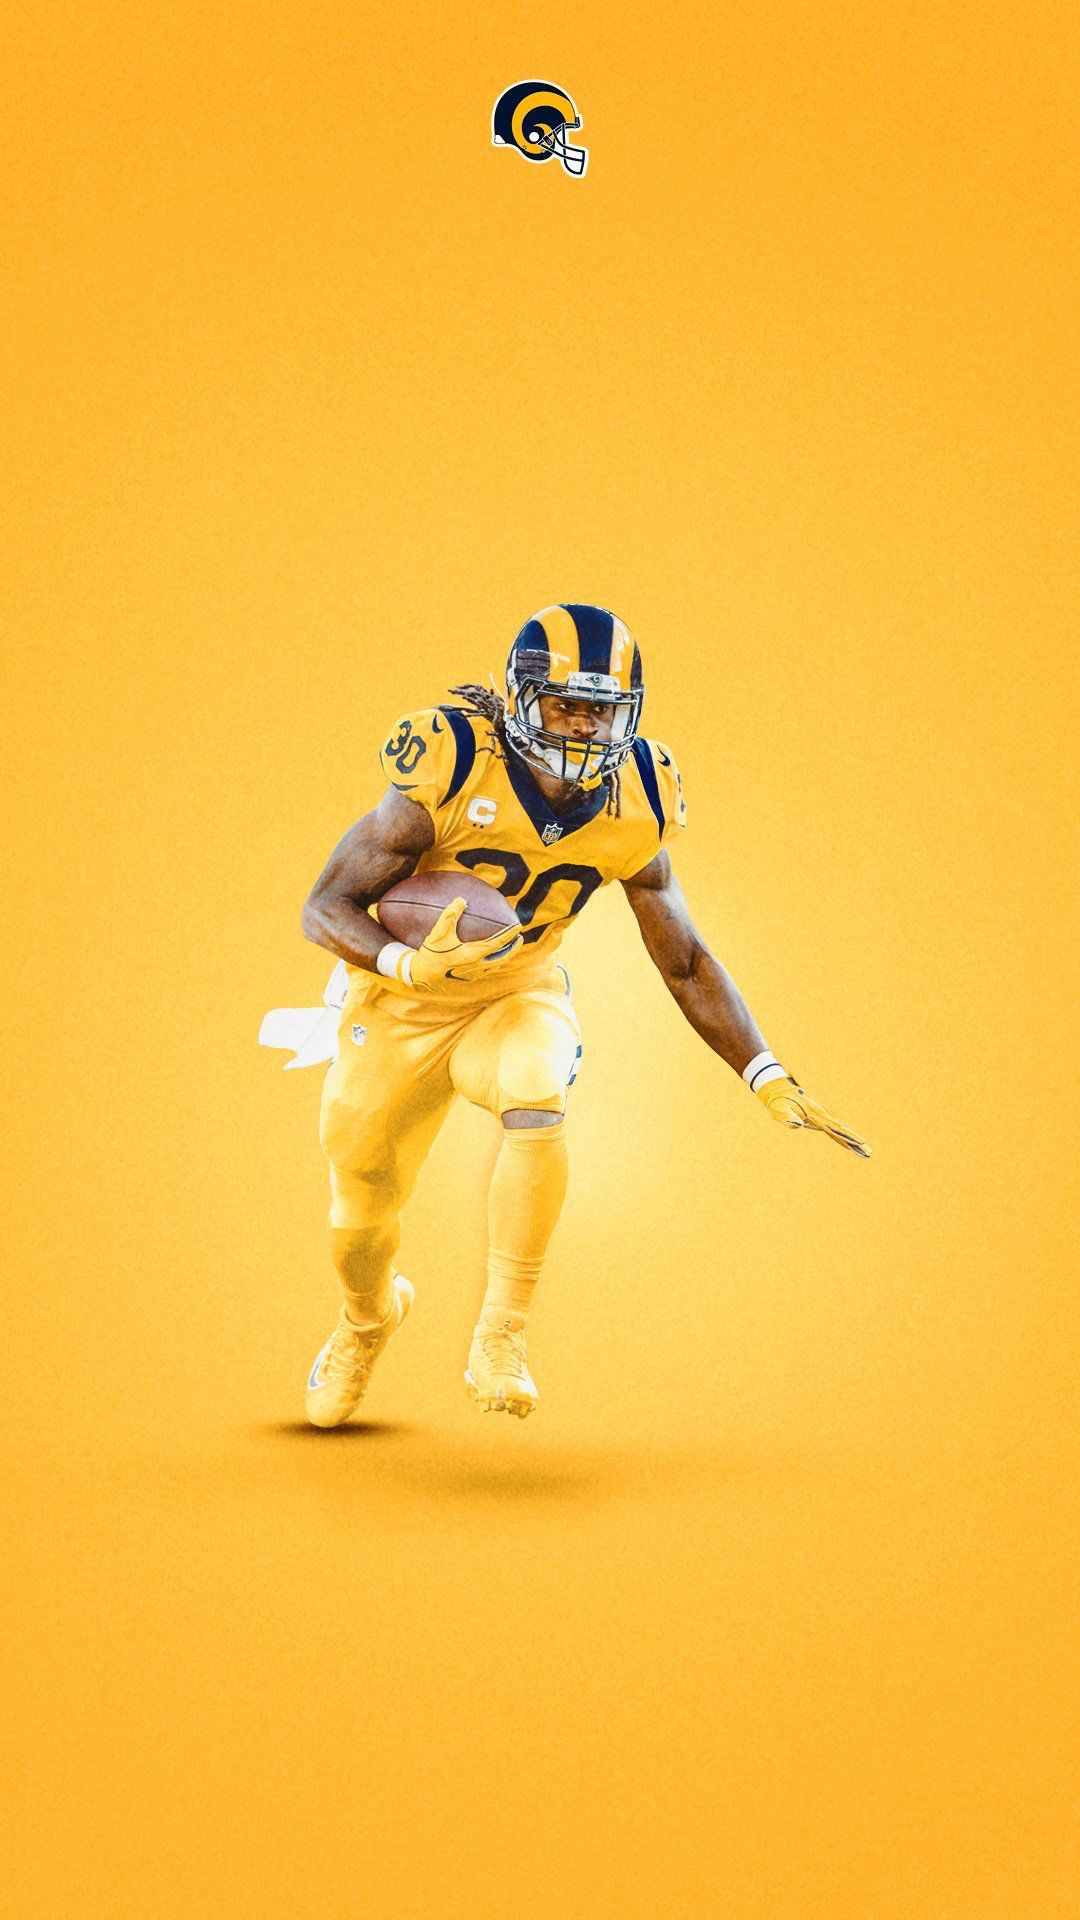 Pin By Rene Winter On Go Rams Fantasy Football Champion Sports Design Inspiration Fantasy Football